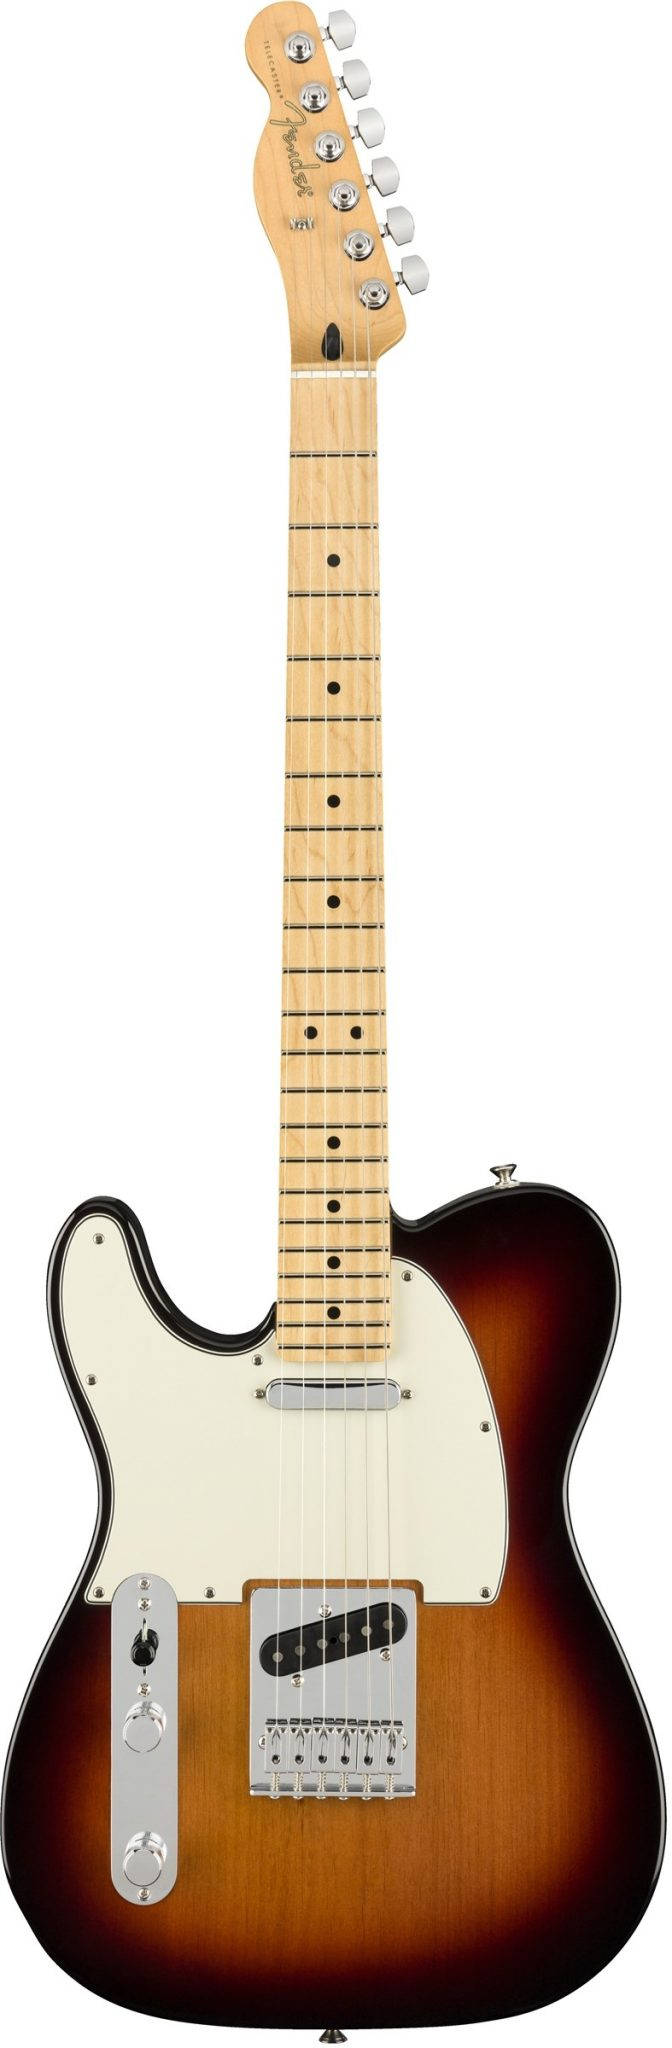 Fender Player Telecaster Left-Handed